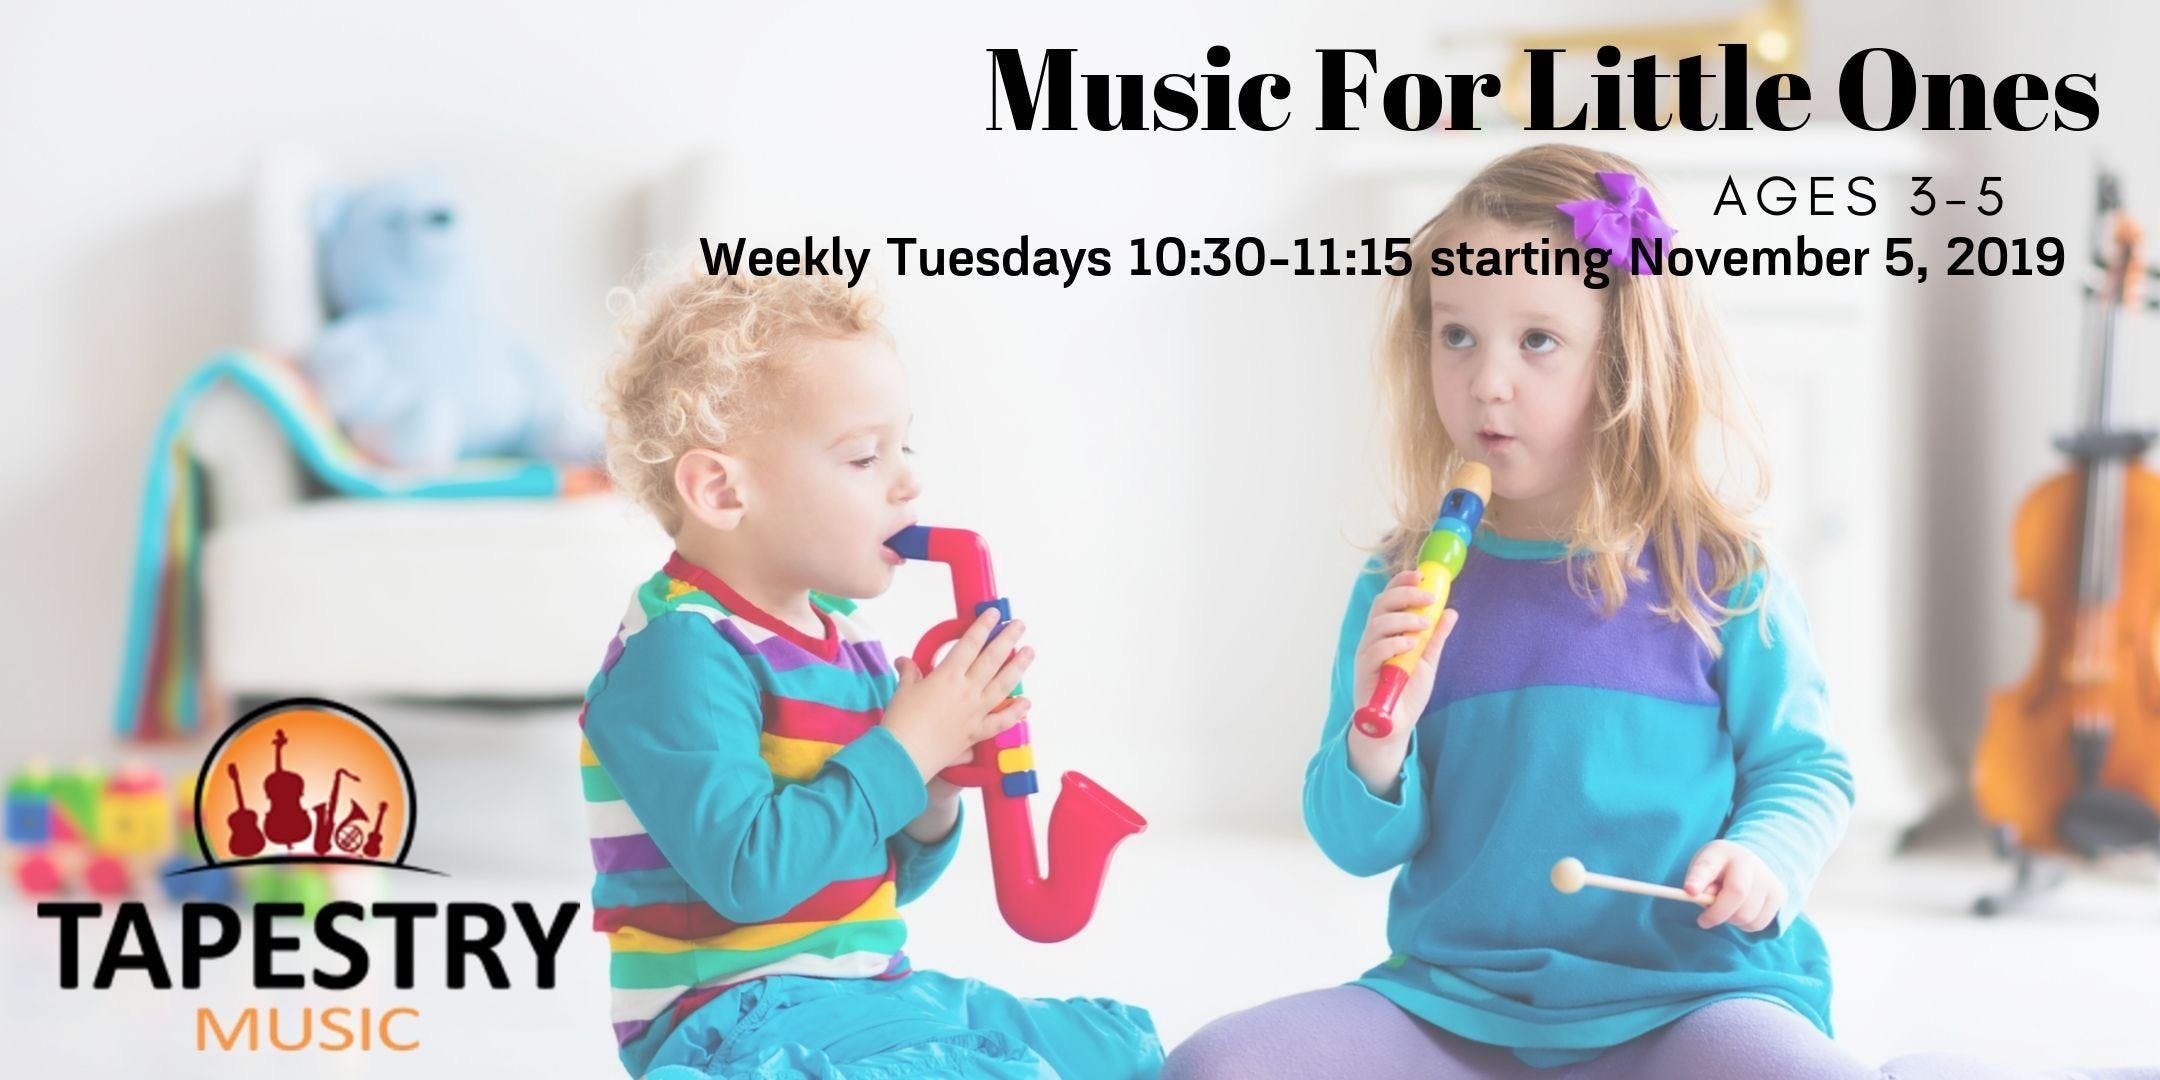 Music For Little Ones! Ages 3-5